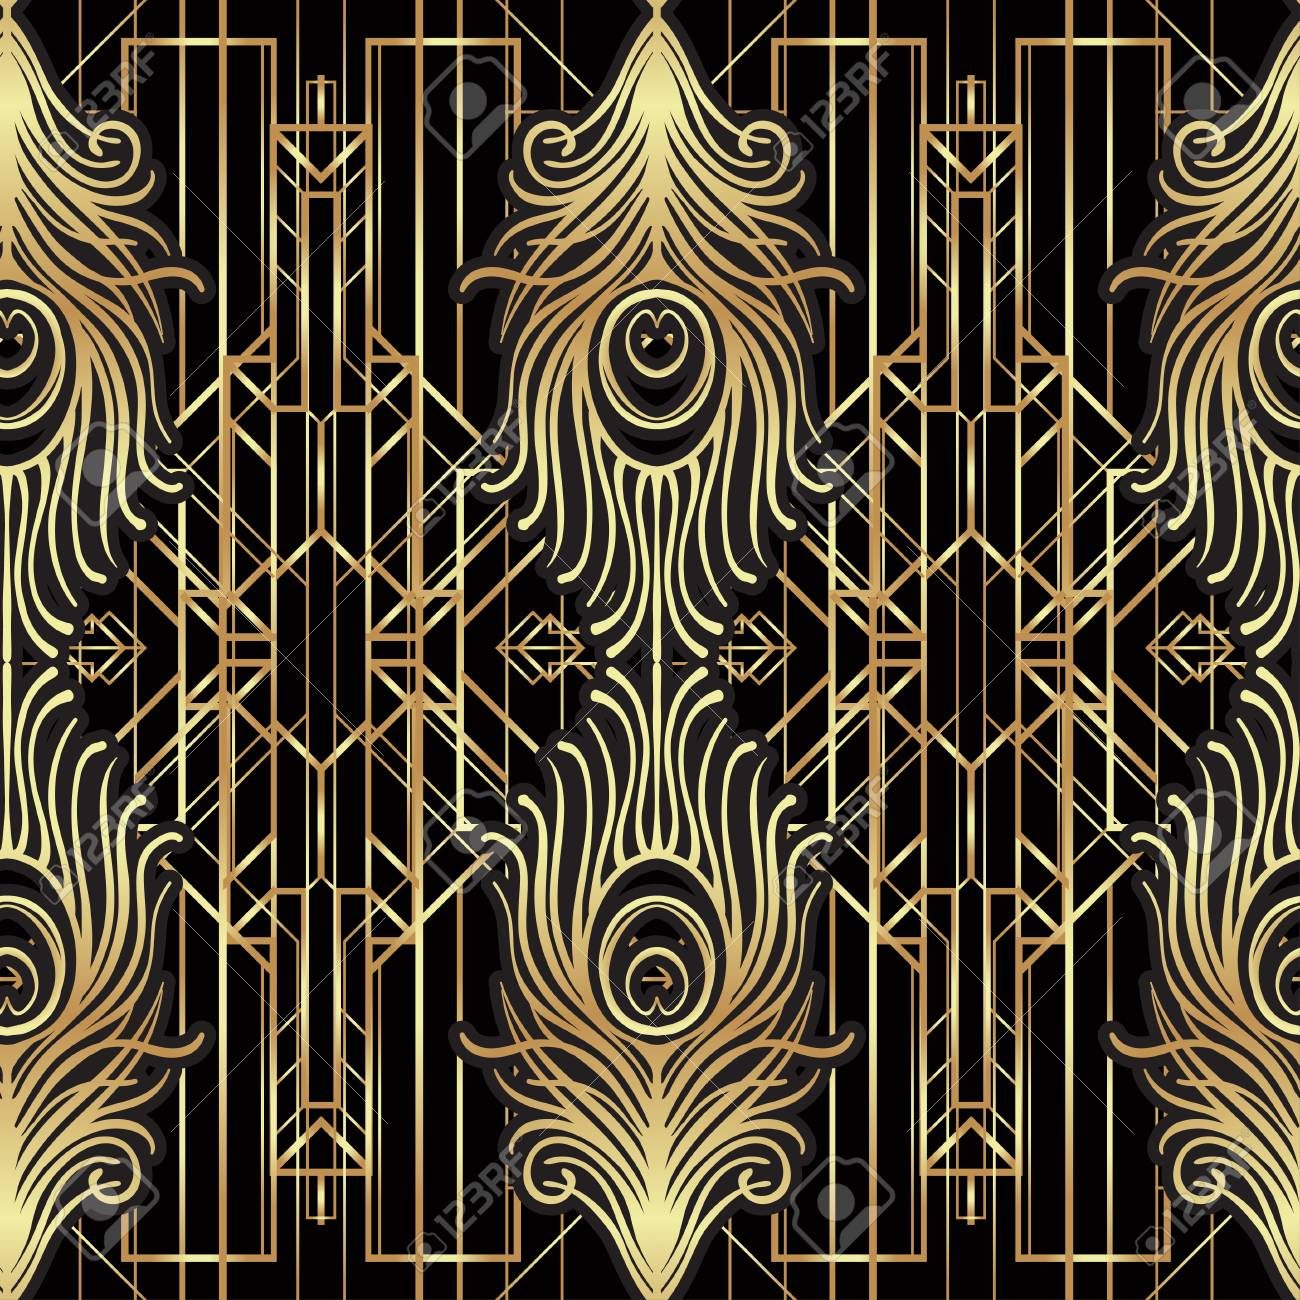 Superb Art Deco Style Geometric Seamless Pattern In Black And Gold Download Free Architecture Designs Grimeyleaguecom